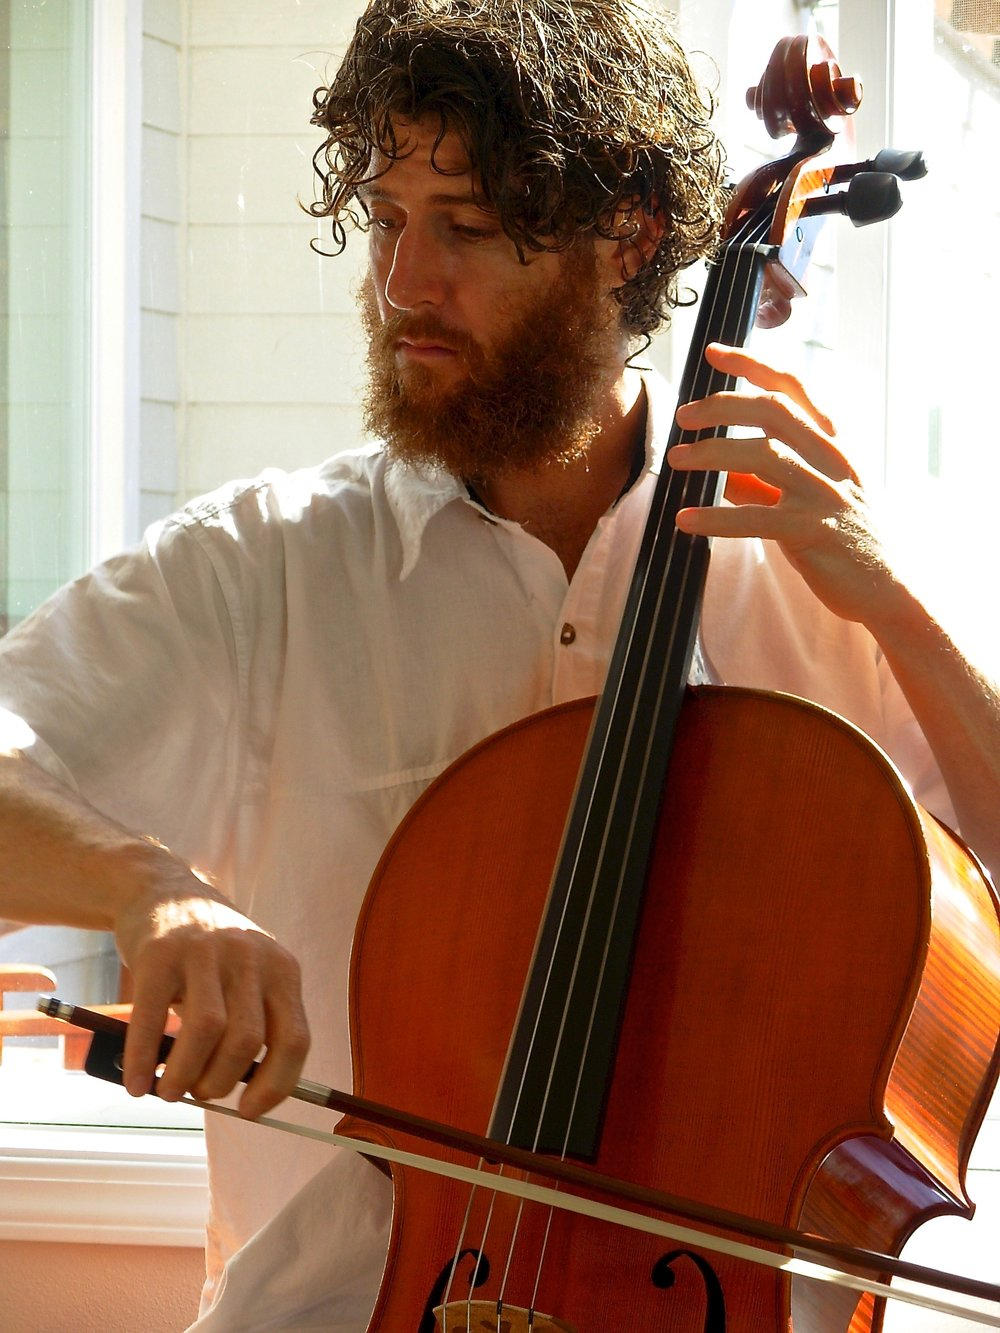 Andy Rising, Cello - Andy Rising took up the cello at 11 years of age. The sound and dynamics of the cello captured his interest after listening to a record of Rostropovich performing the Dvorak Cello Concerto. Ever since that day he was loaned a Cello from Eisenhower Middle School in San Antonio Texas, he could hardly stop playing it. He has had many great teachers: his first from the San Antonio Symphony (Annett D'Giocia), and one 0f his last is a renowned international performer (Yehuda Hanani).Andy was born in Kealakekua, Hawaii. Water has been part of his life and inspiration. After all, music is a collection of waves! The ability to ebb and flow, like the living waters, was borne of his Hawaiian upbringing and speaks to his bowing technique and compositions. Andy is a composer who has traveled to many National Parks and spent many a month in the great outdoors where much of his music is dreamed up. Andy loves to improvise and create the song of the moment. He also loves Classical music- with the amazing breadth of emotion and communication it brings to us, along with its ability to connect centuries and generations.